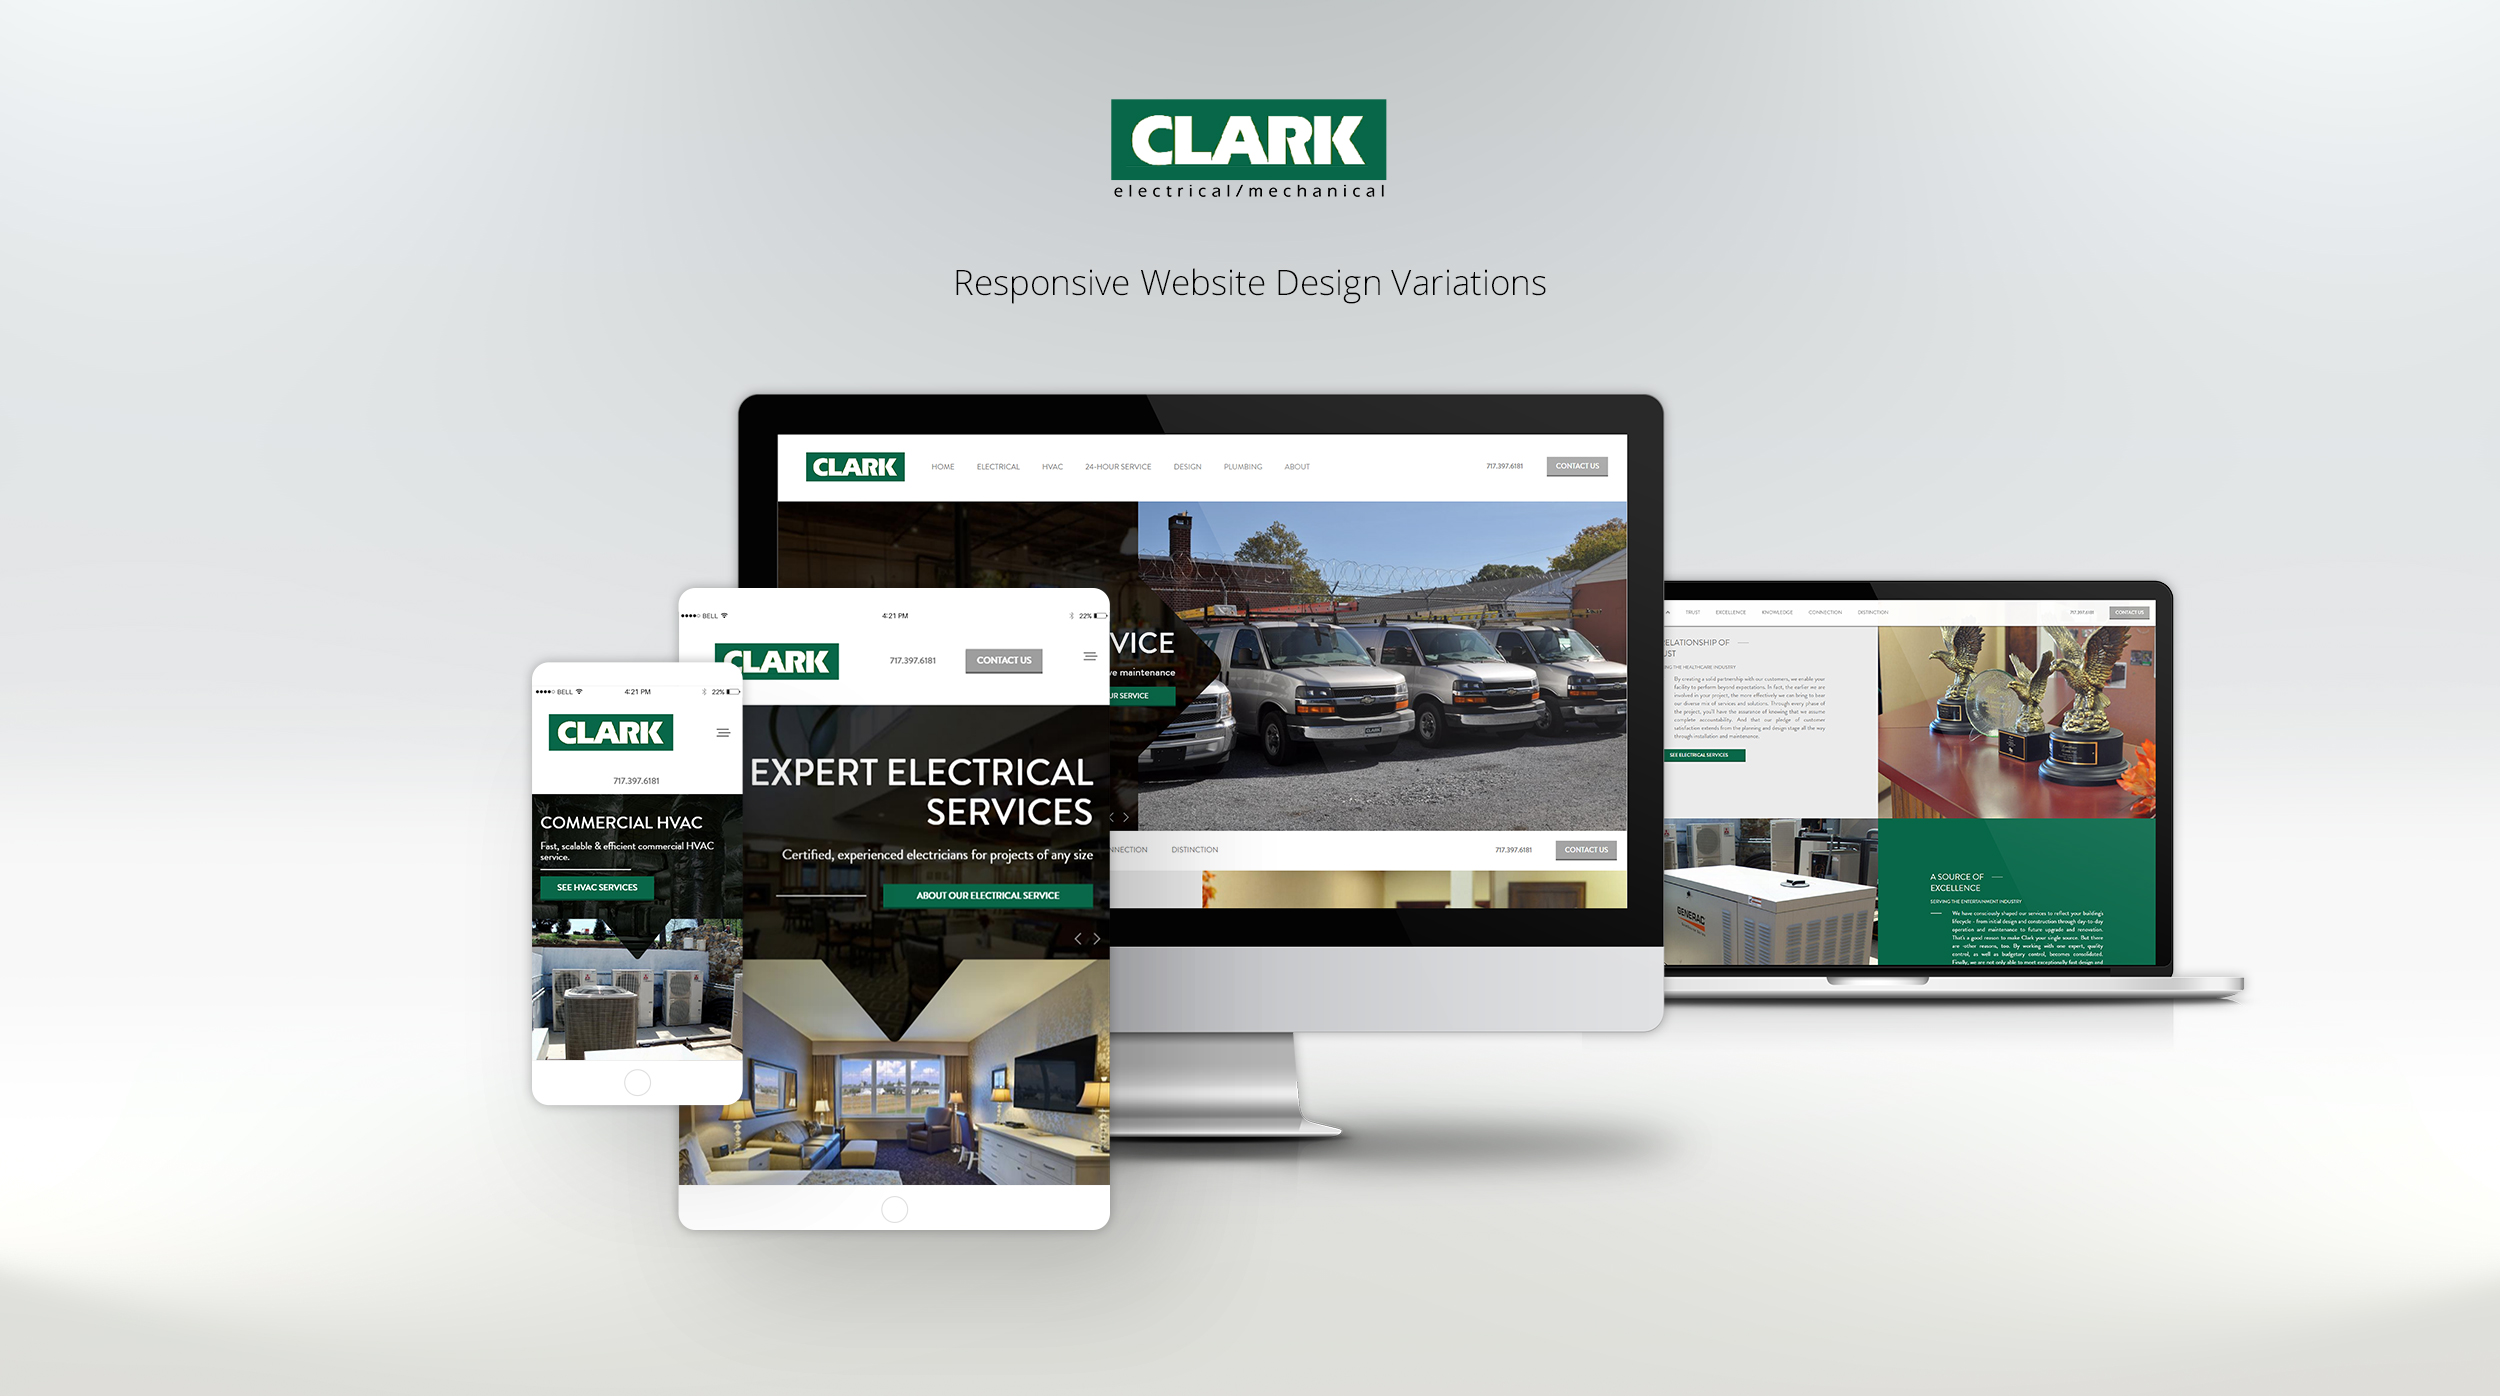 clark website displayed on laptop, tablet, and phone